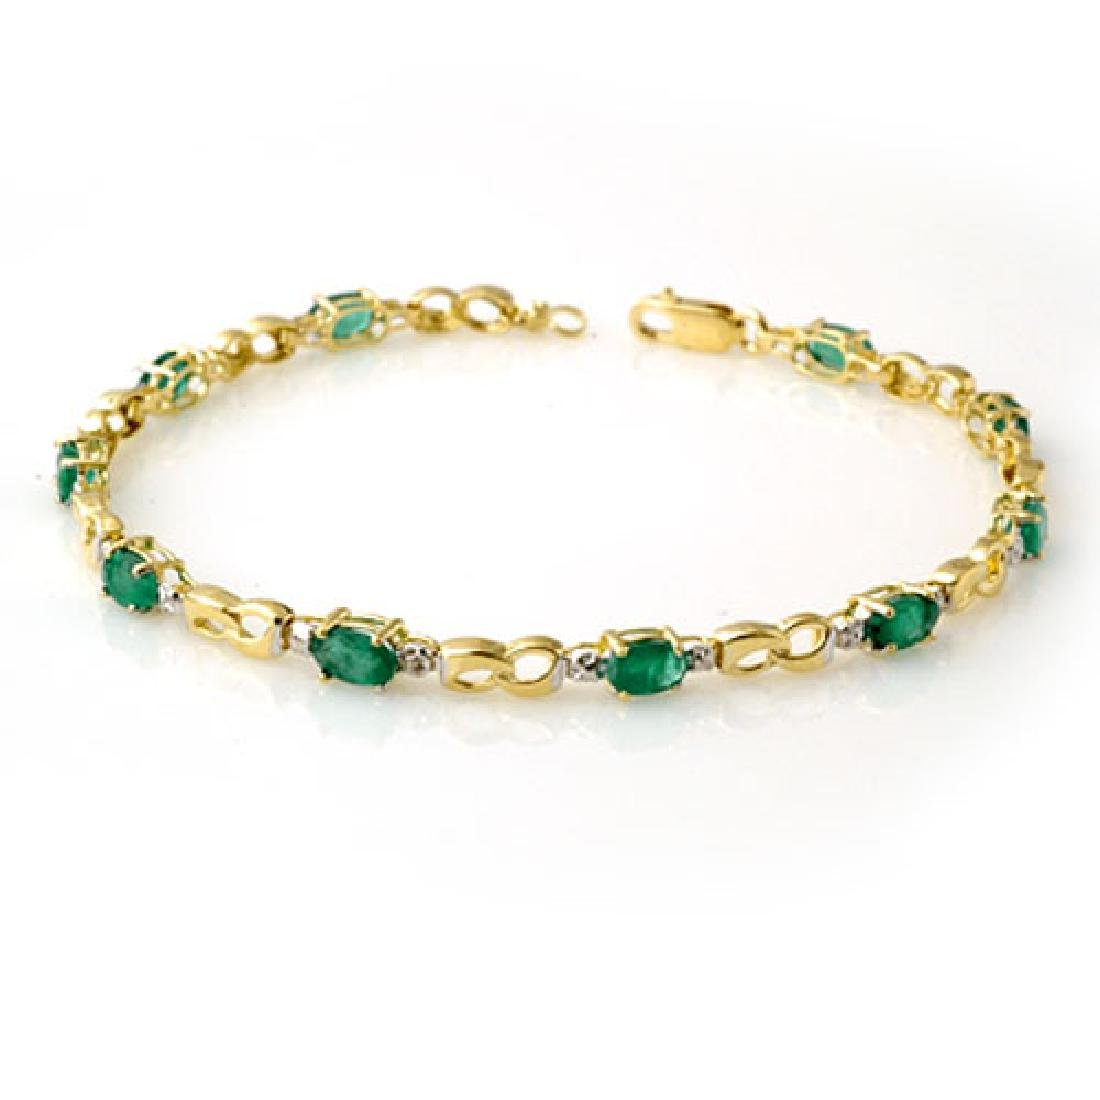 2.76 CTW Emerald & Diamond Bracelet 10K Yellow Gold